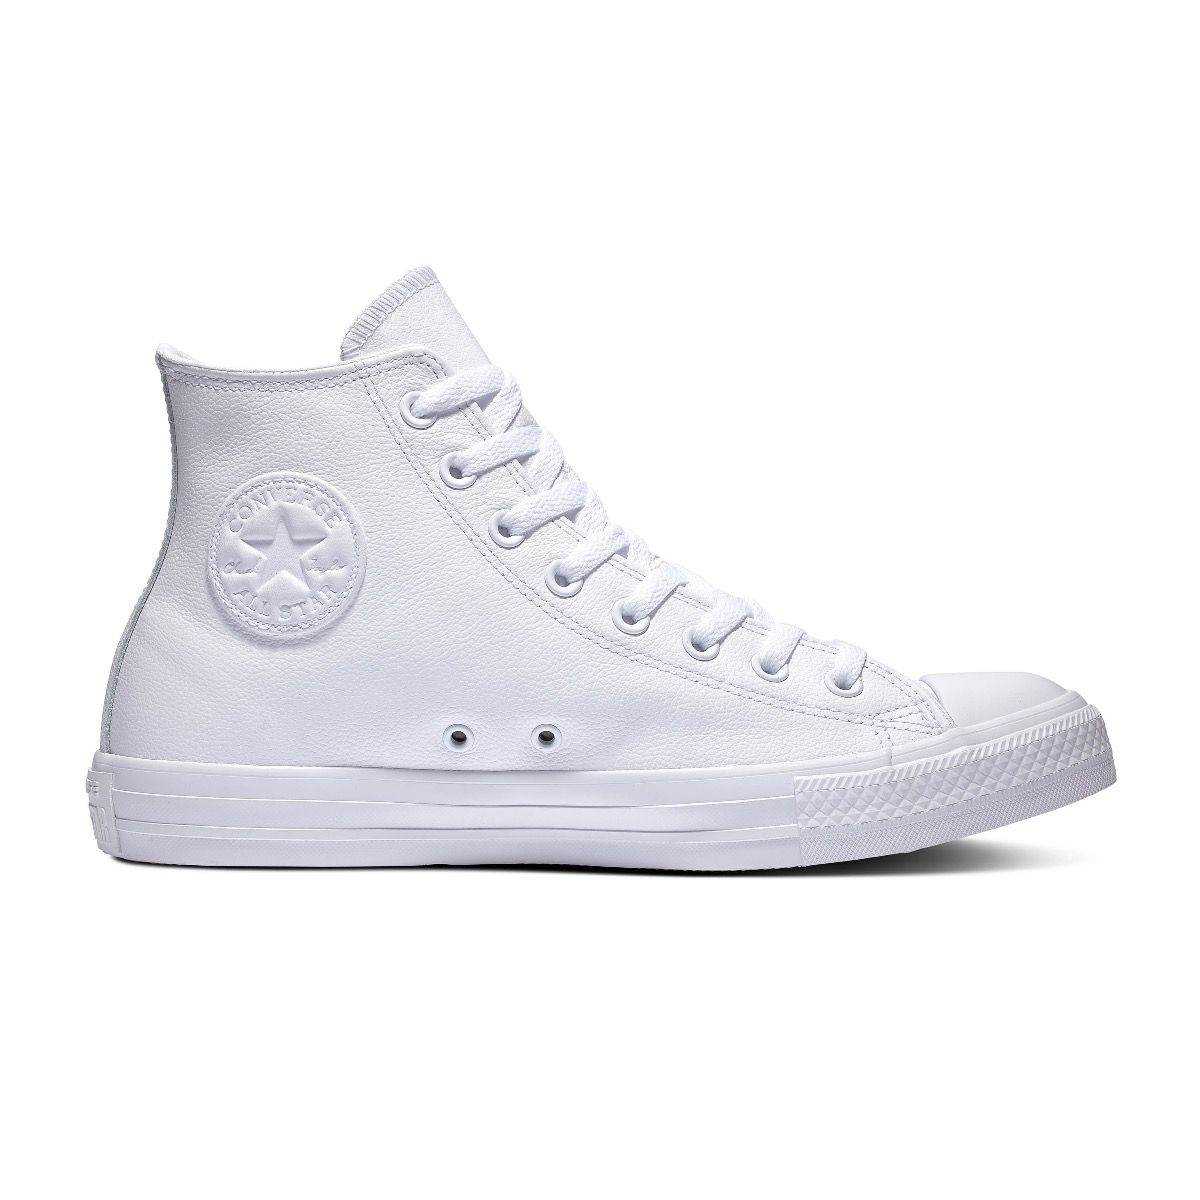 Converse All Stars Leather Hoog 1T406 Wit